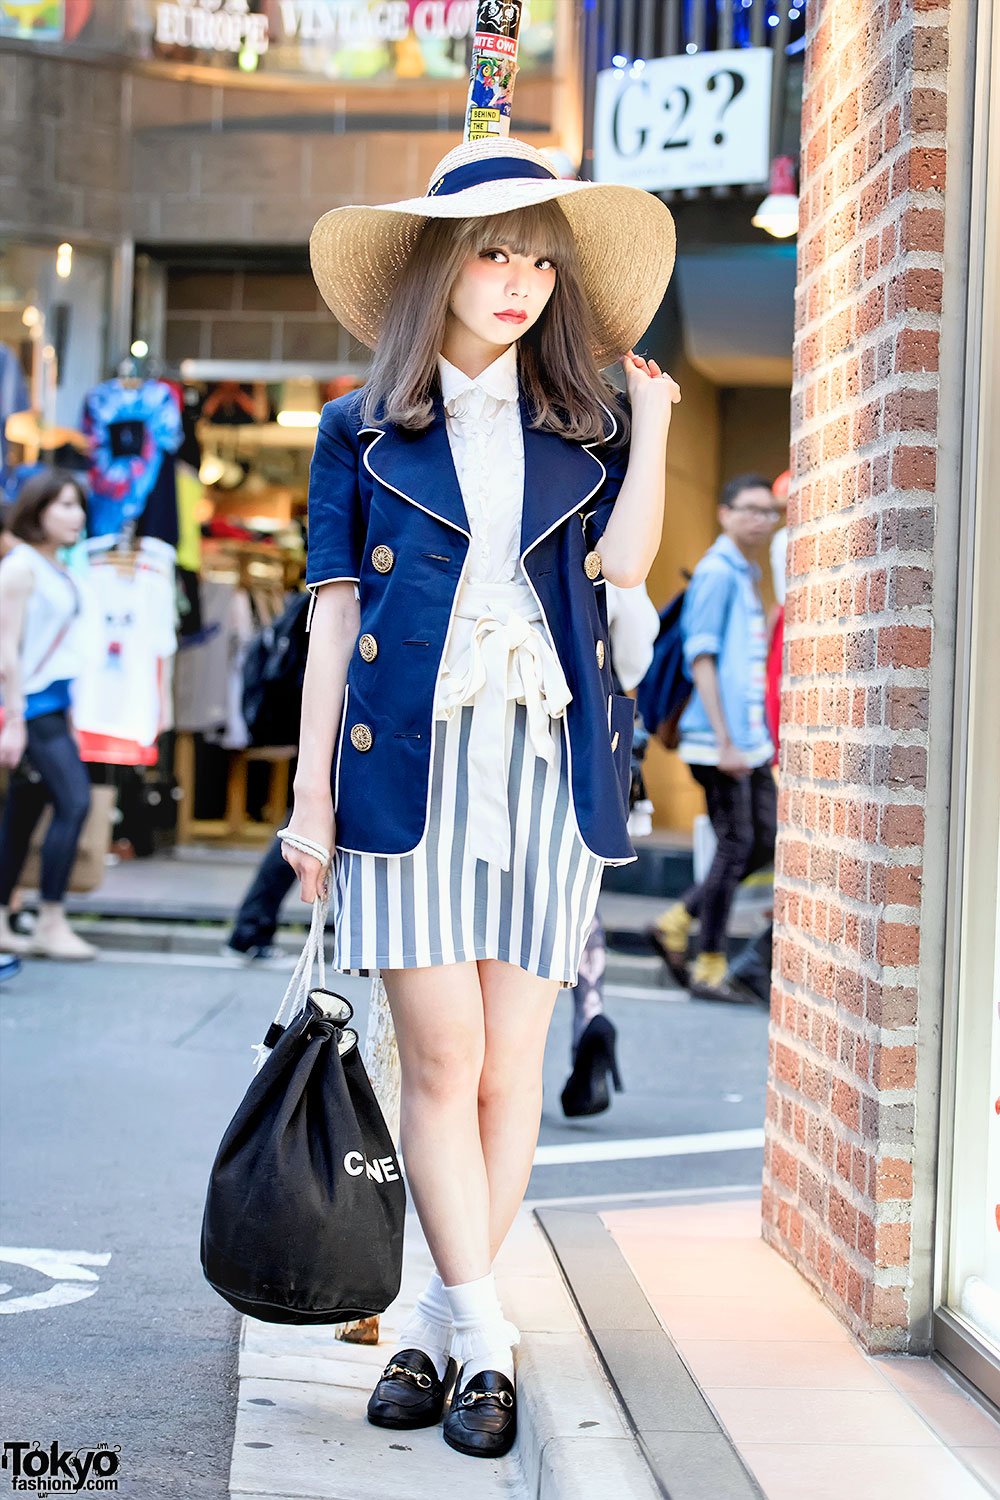 Swankiss Saaya In Harajuku W Wide Brim Hat Kinji Blazer Chanel Bag